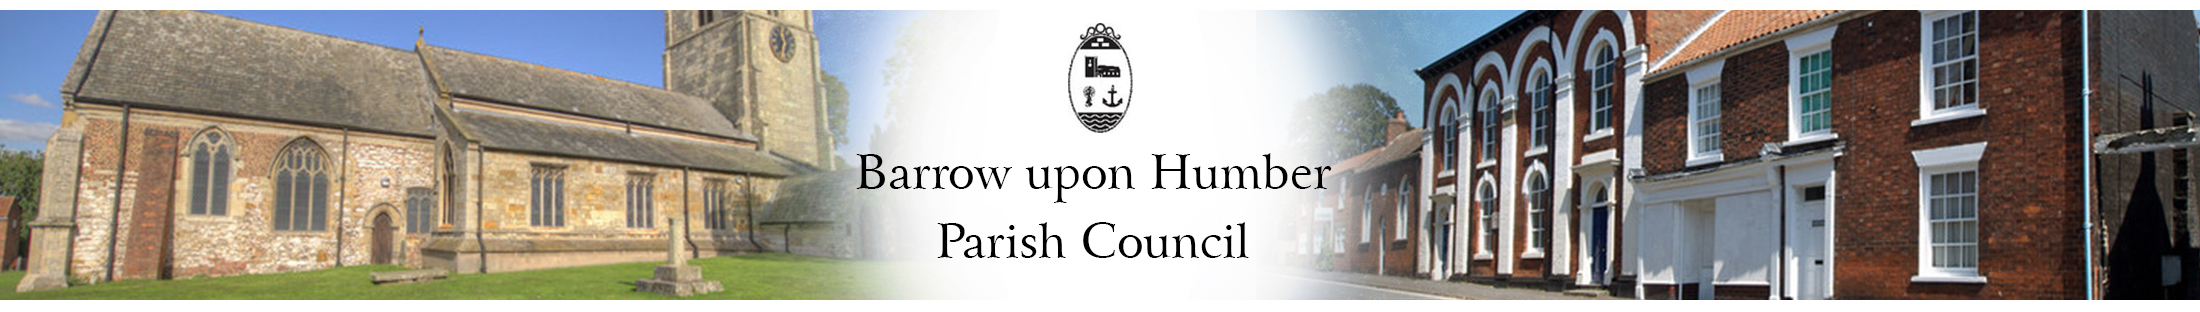 Header Image for Barrow upon Humber Parish Council